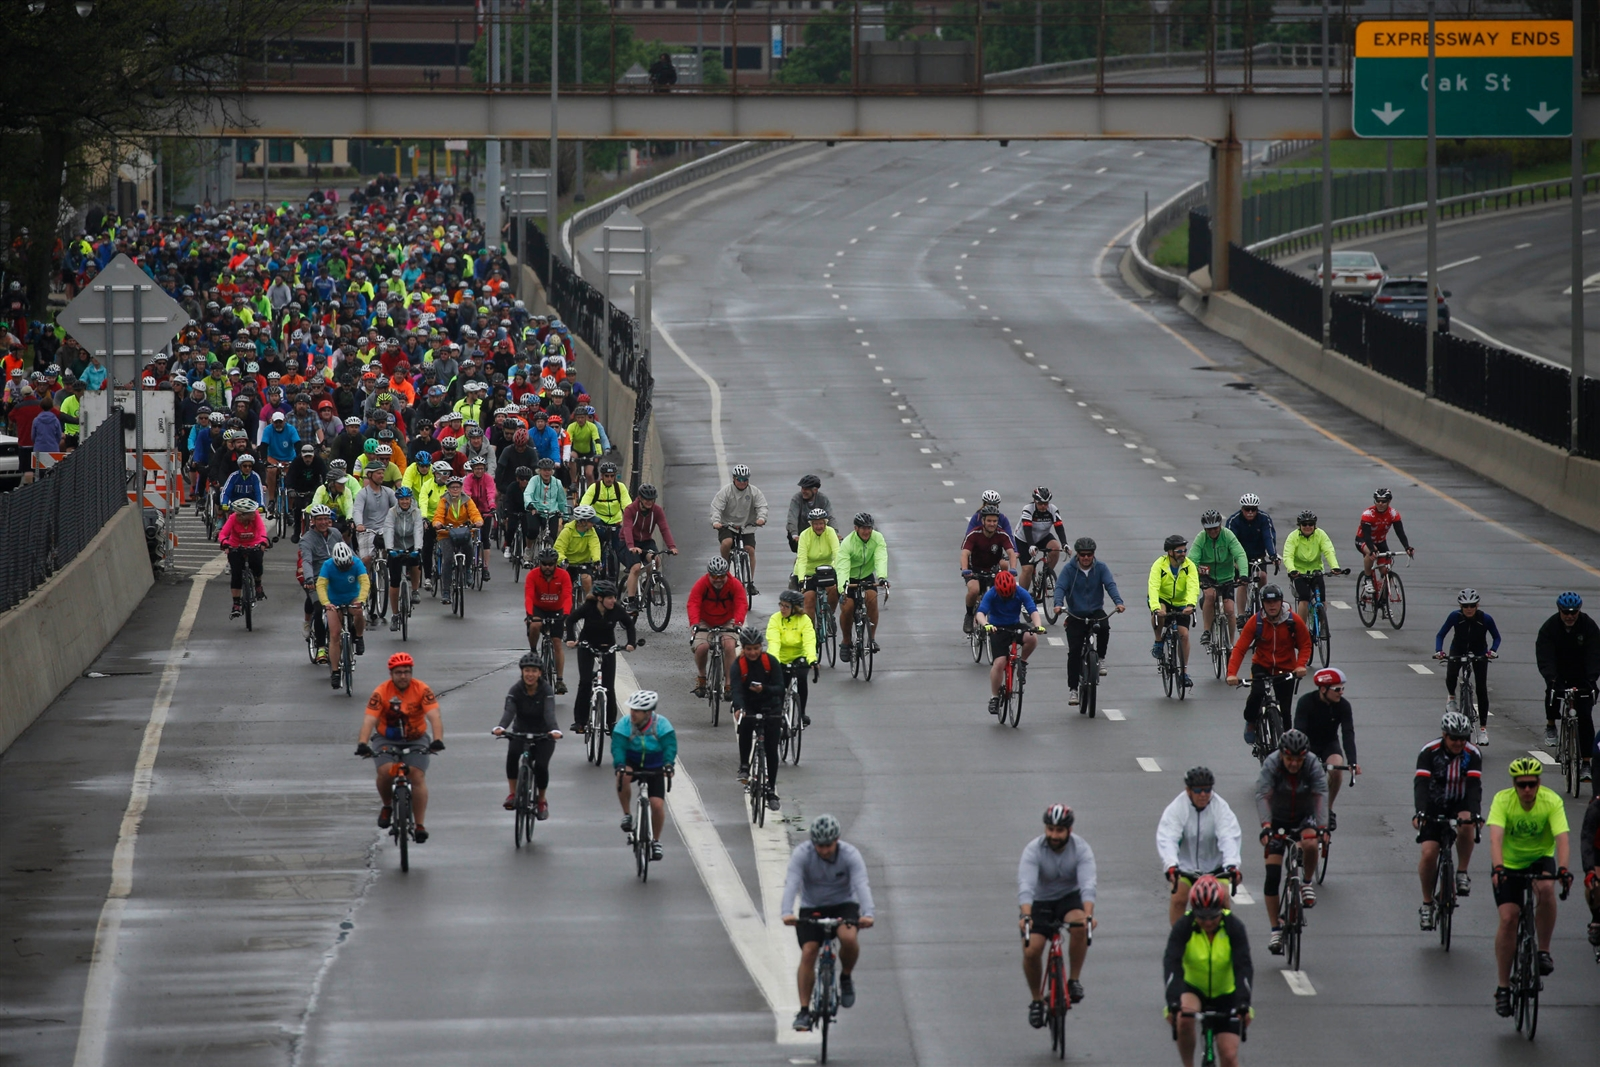 The annual bicycle event takes riders over the Skyway and, this year, onto the Kensington and Scajaquada expressways in 10-mile and 18-mile routes in a celebration of fitness bicycle access and awareness.